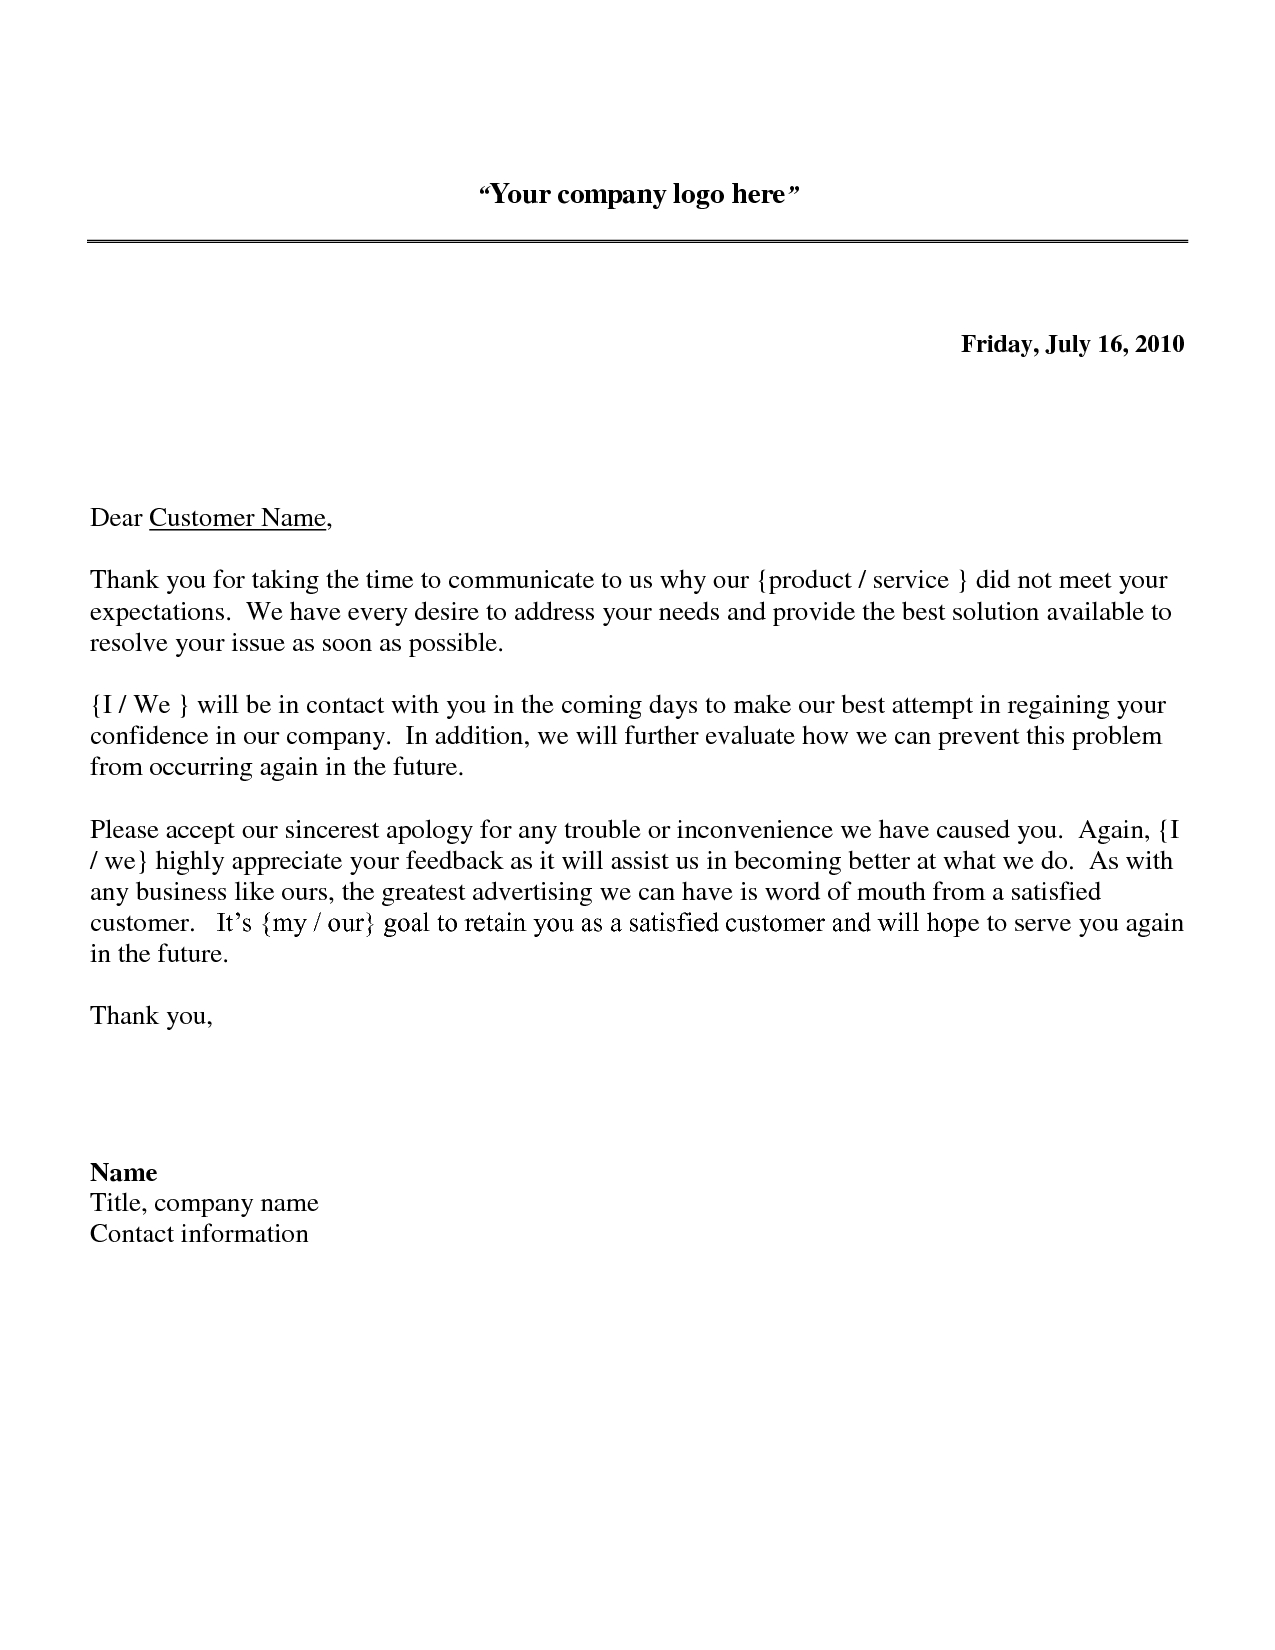 Reply to Patient Complaint Letter Template - Business Apology Letter Sample Download as Doc Frompoletter